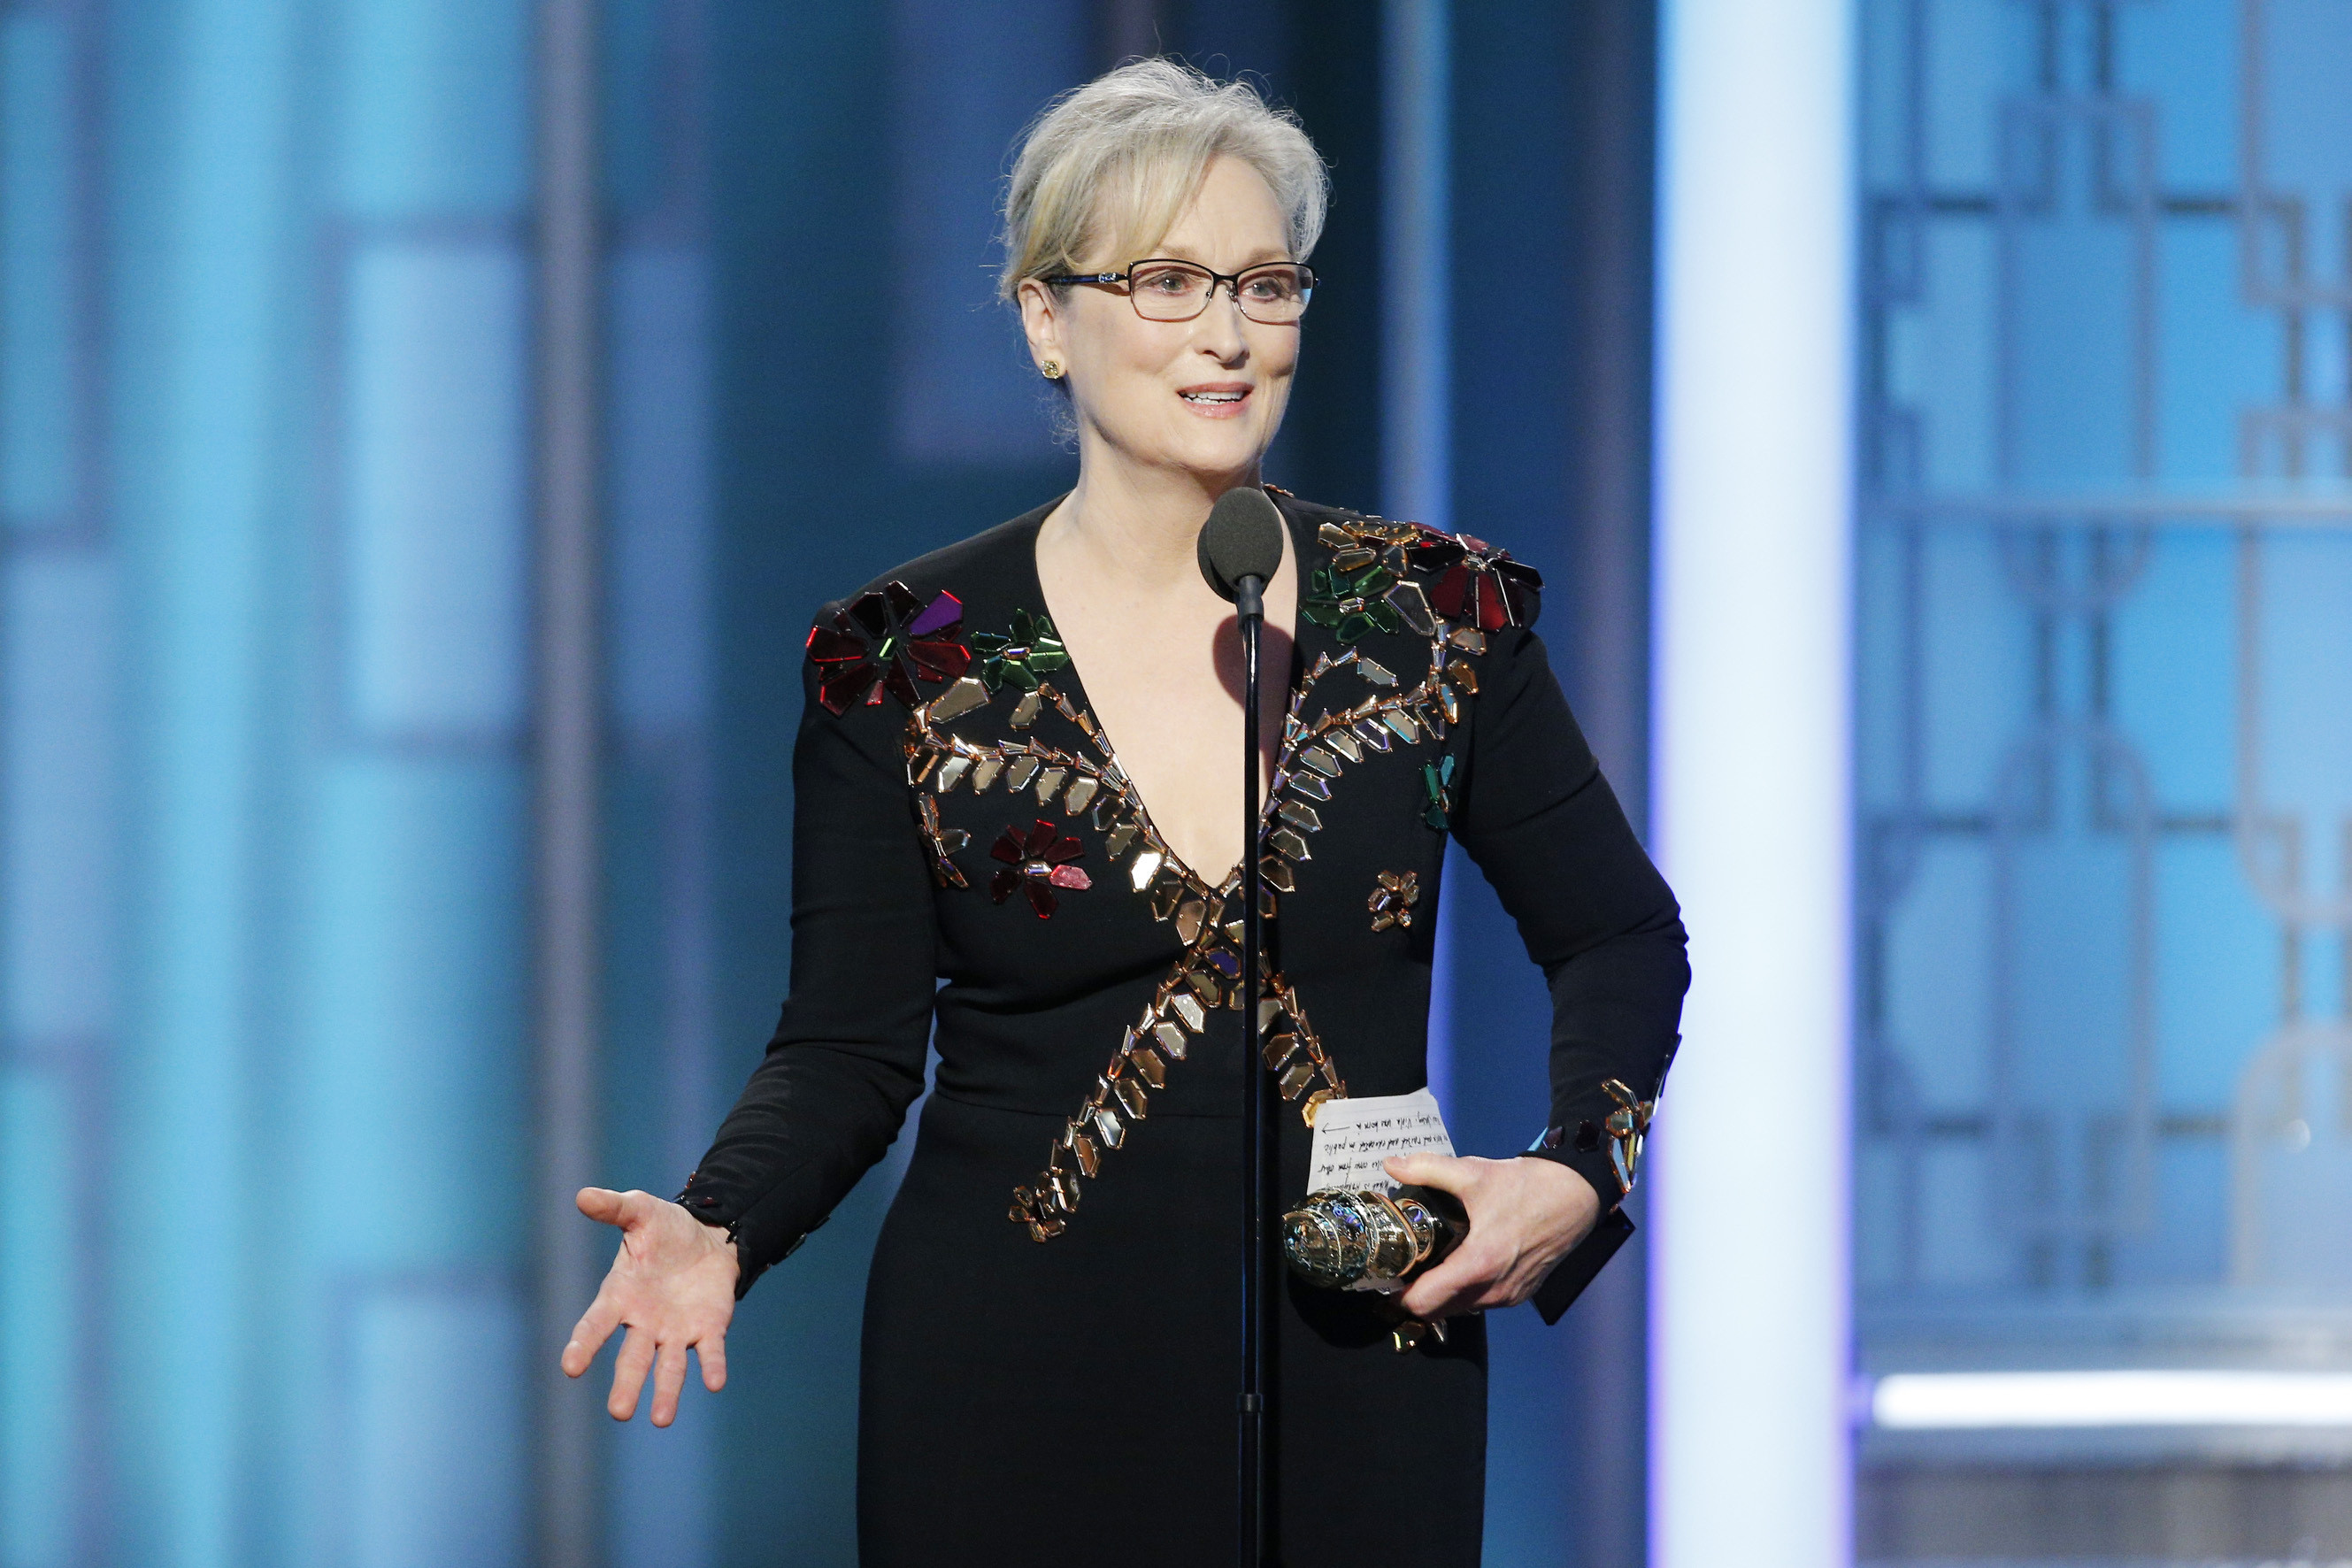 meryl streep speech